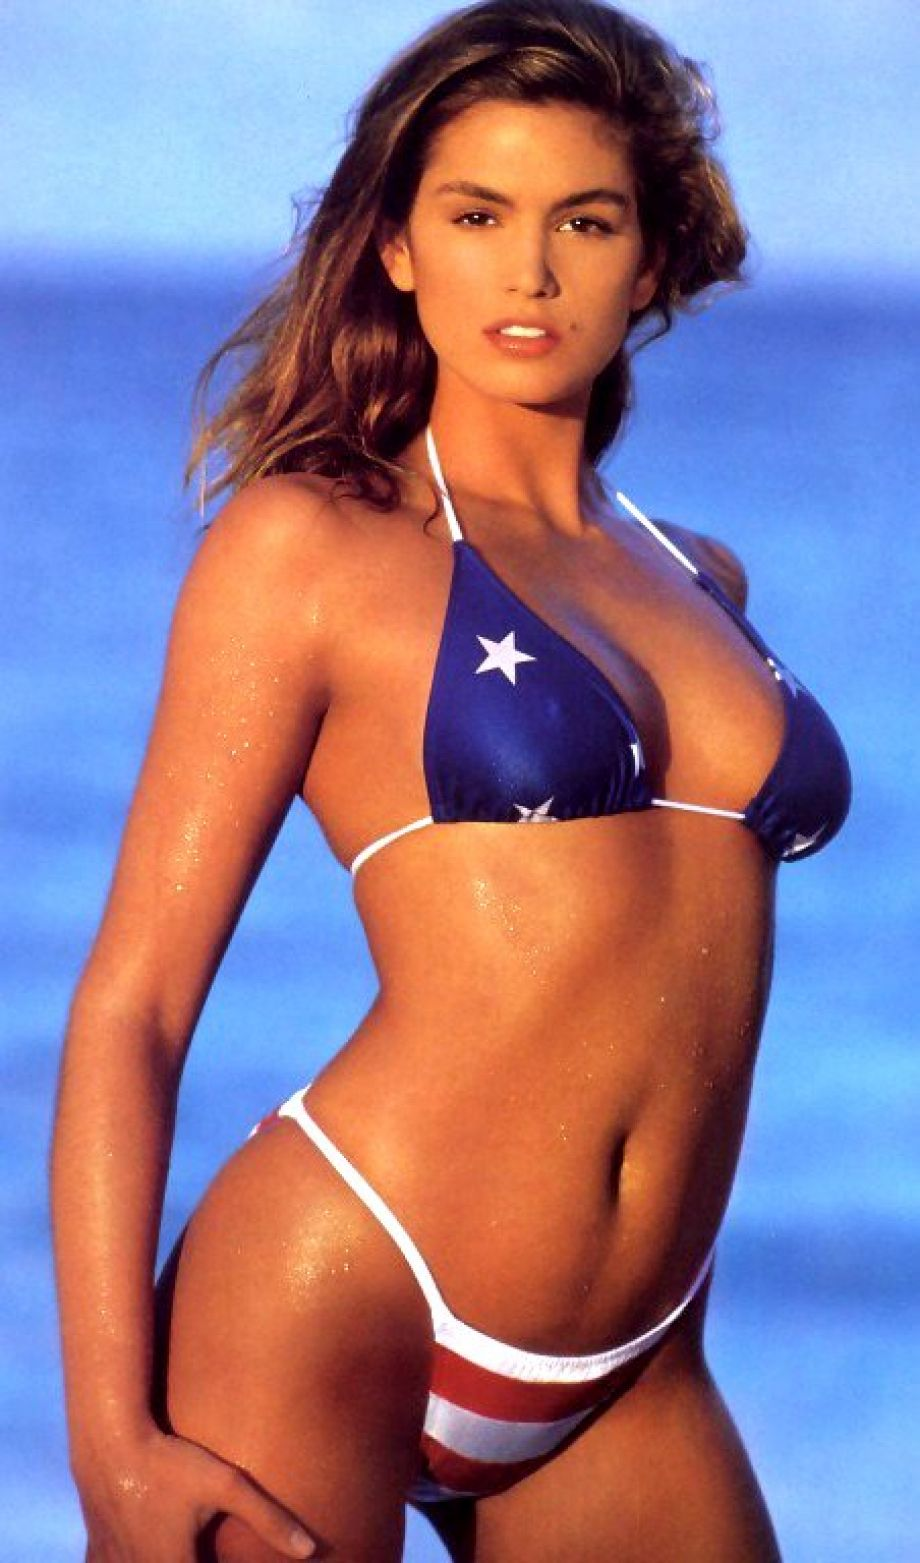 33 Hottest Cindy Crawford Pictures That Will Make You Go Wow-7096